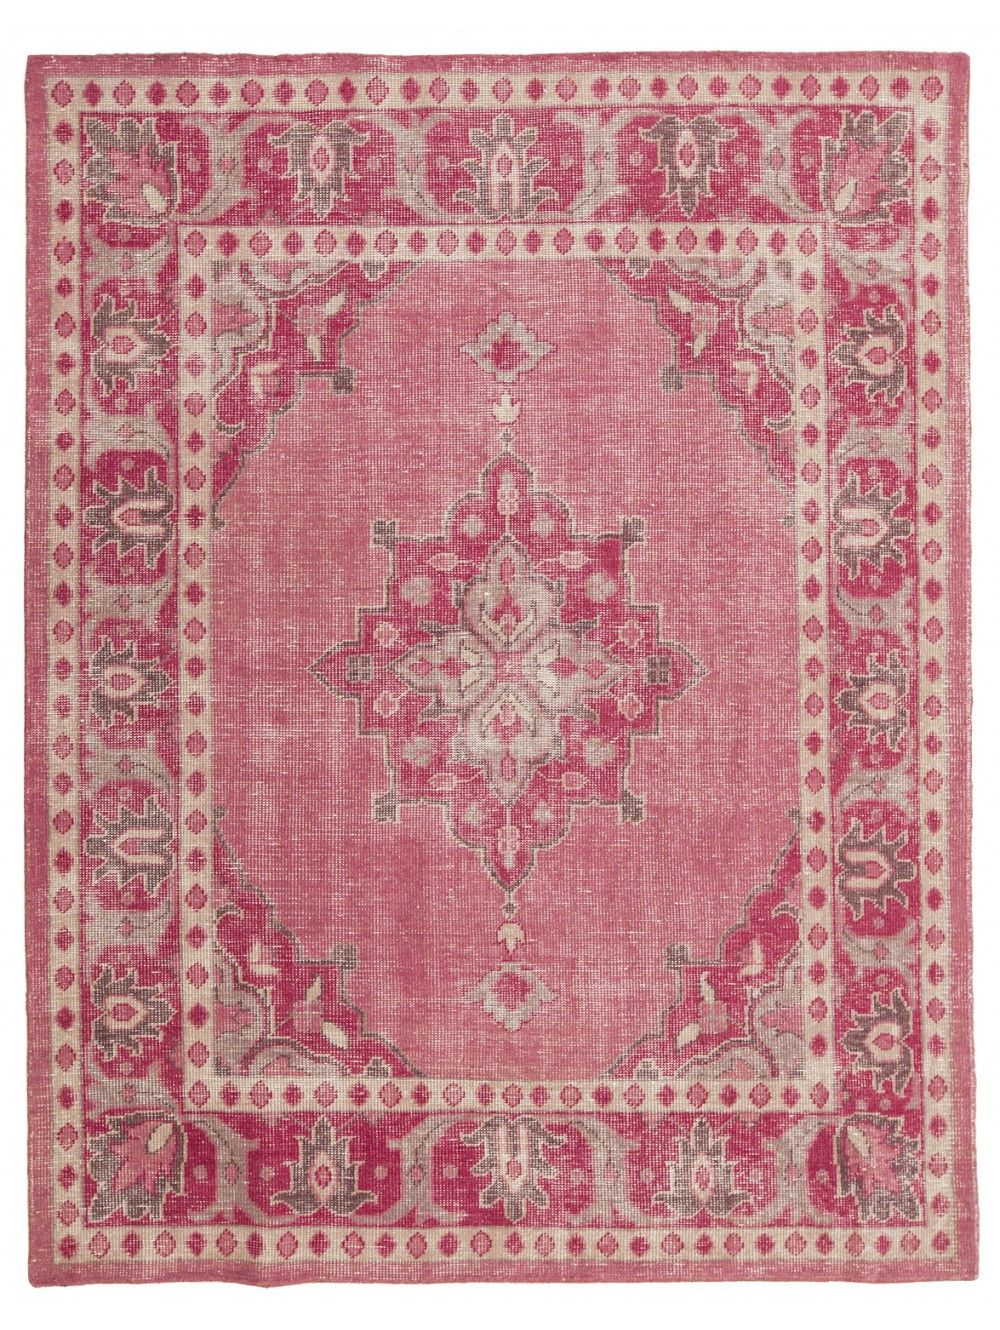 Pari Rug Rugs Rugs On Carpet Lulu And Georgia